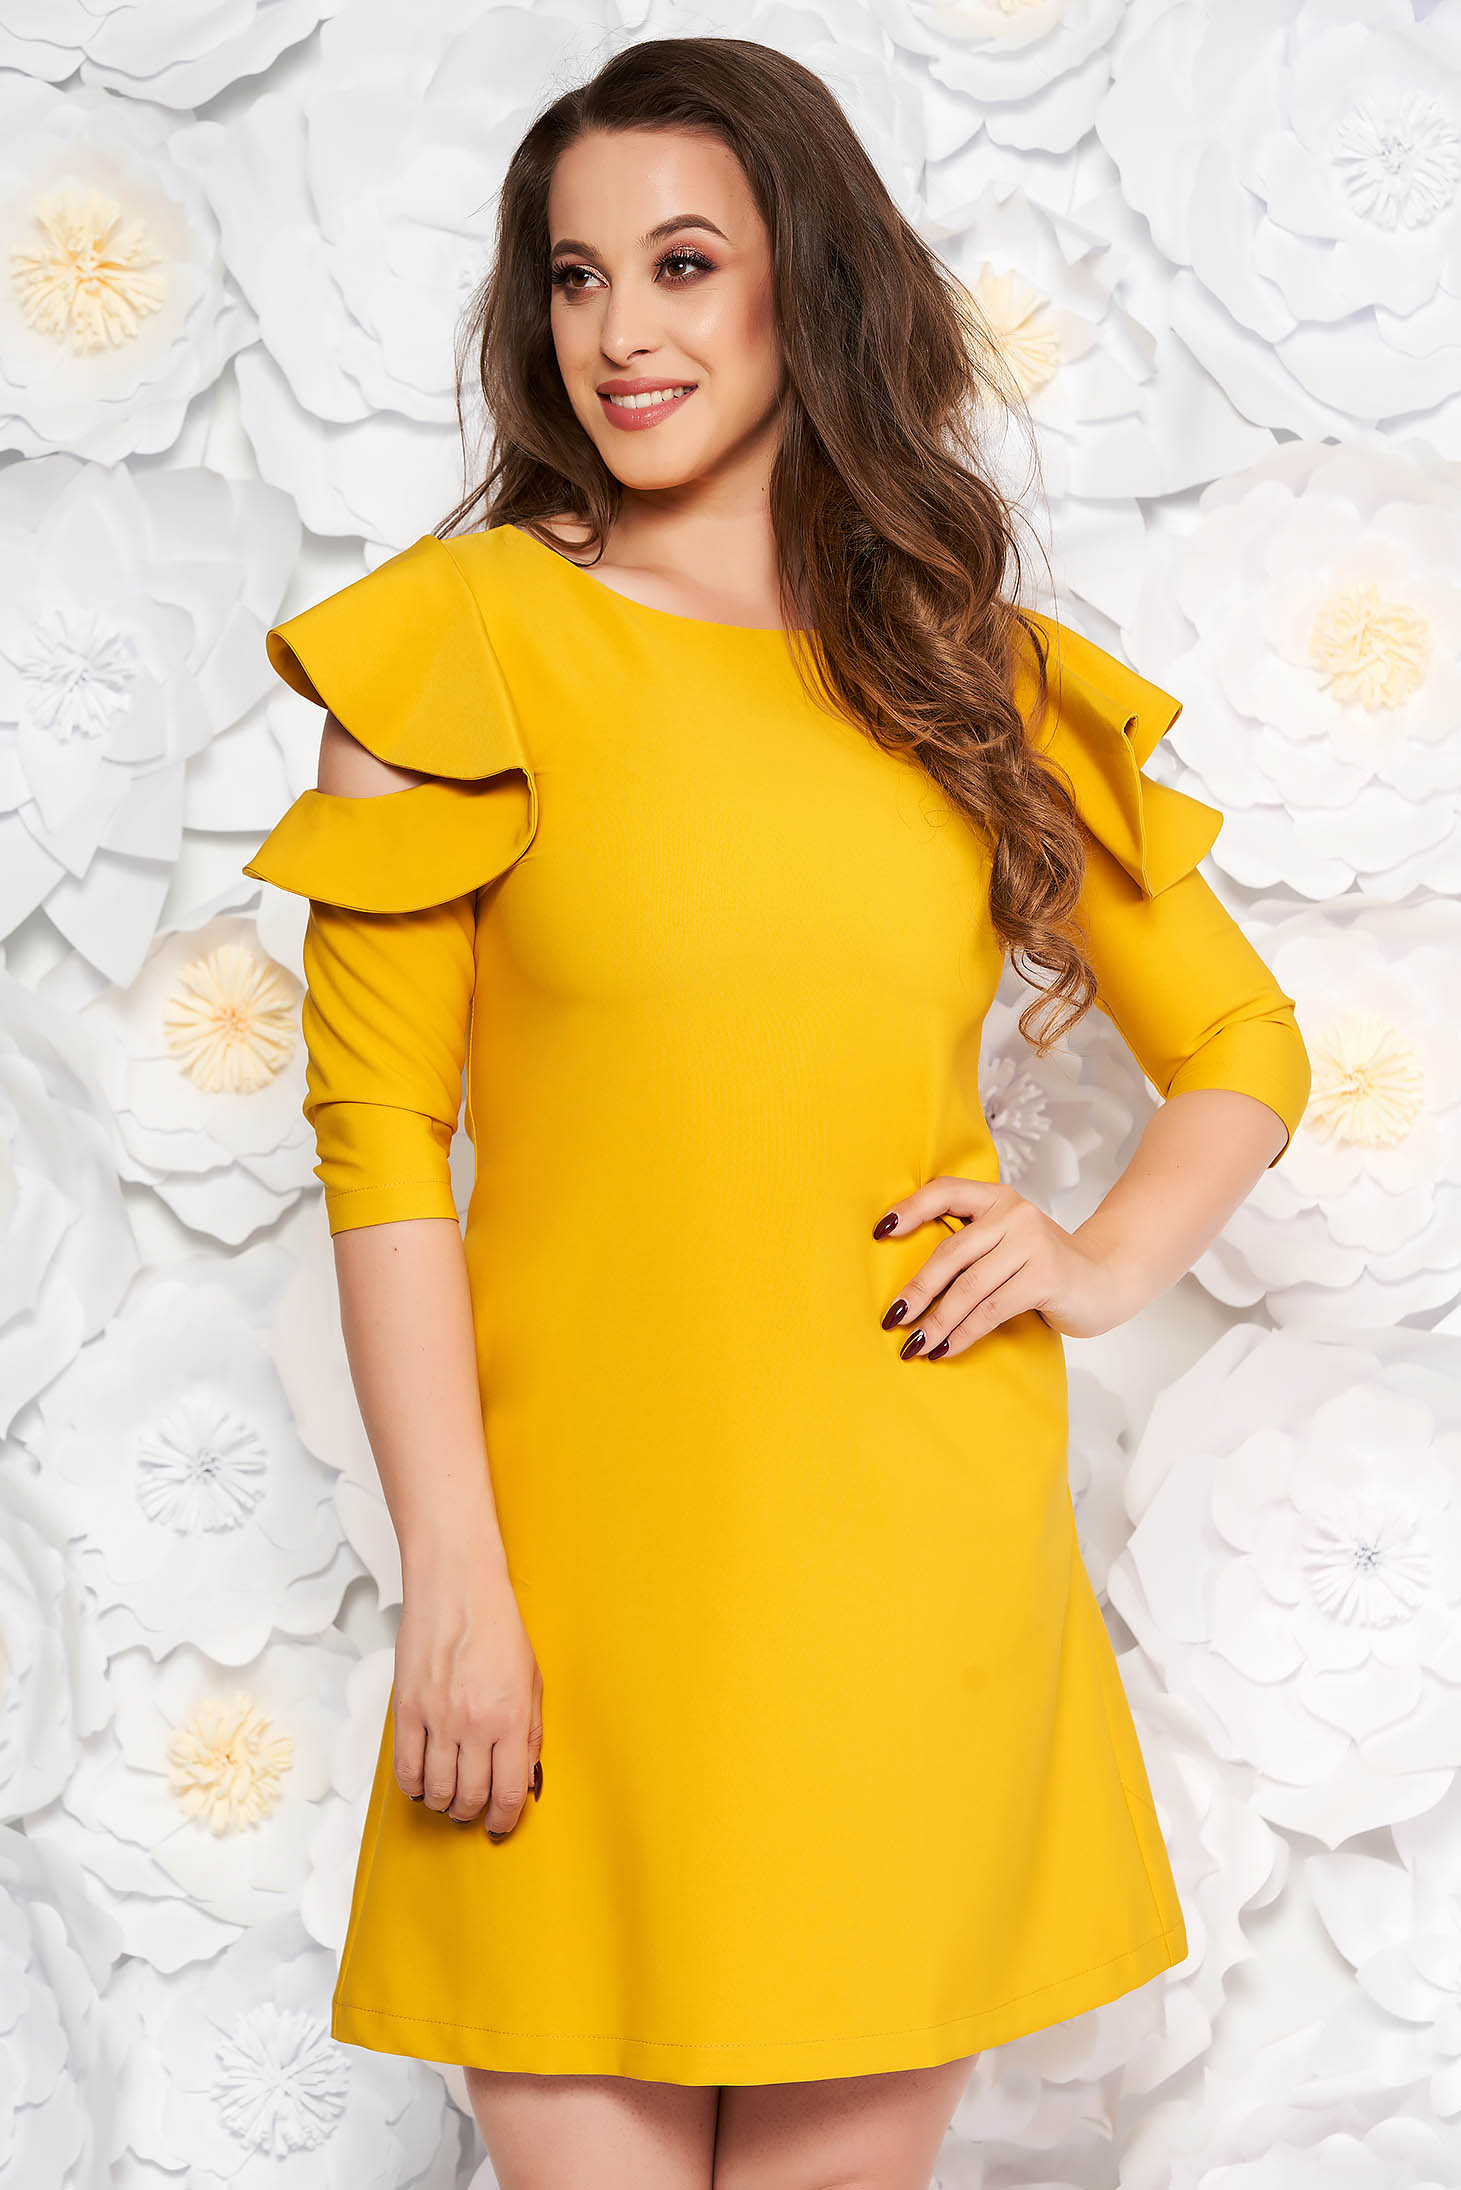 Mustard daily elegant a-line dress slightly elastic fabric with ruffled sleeves